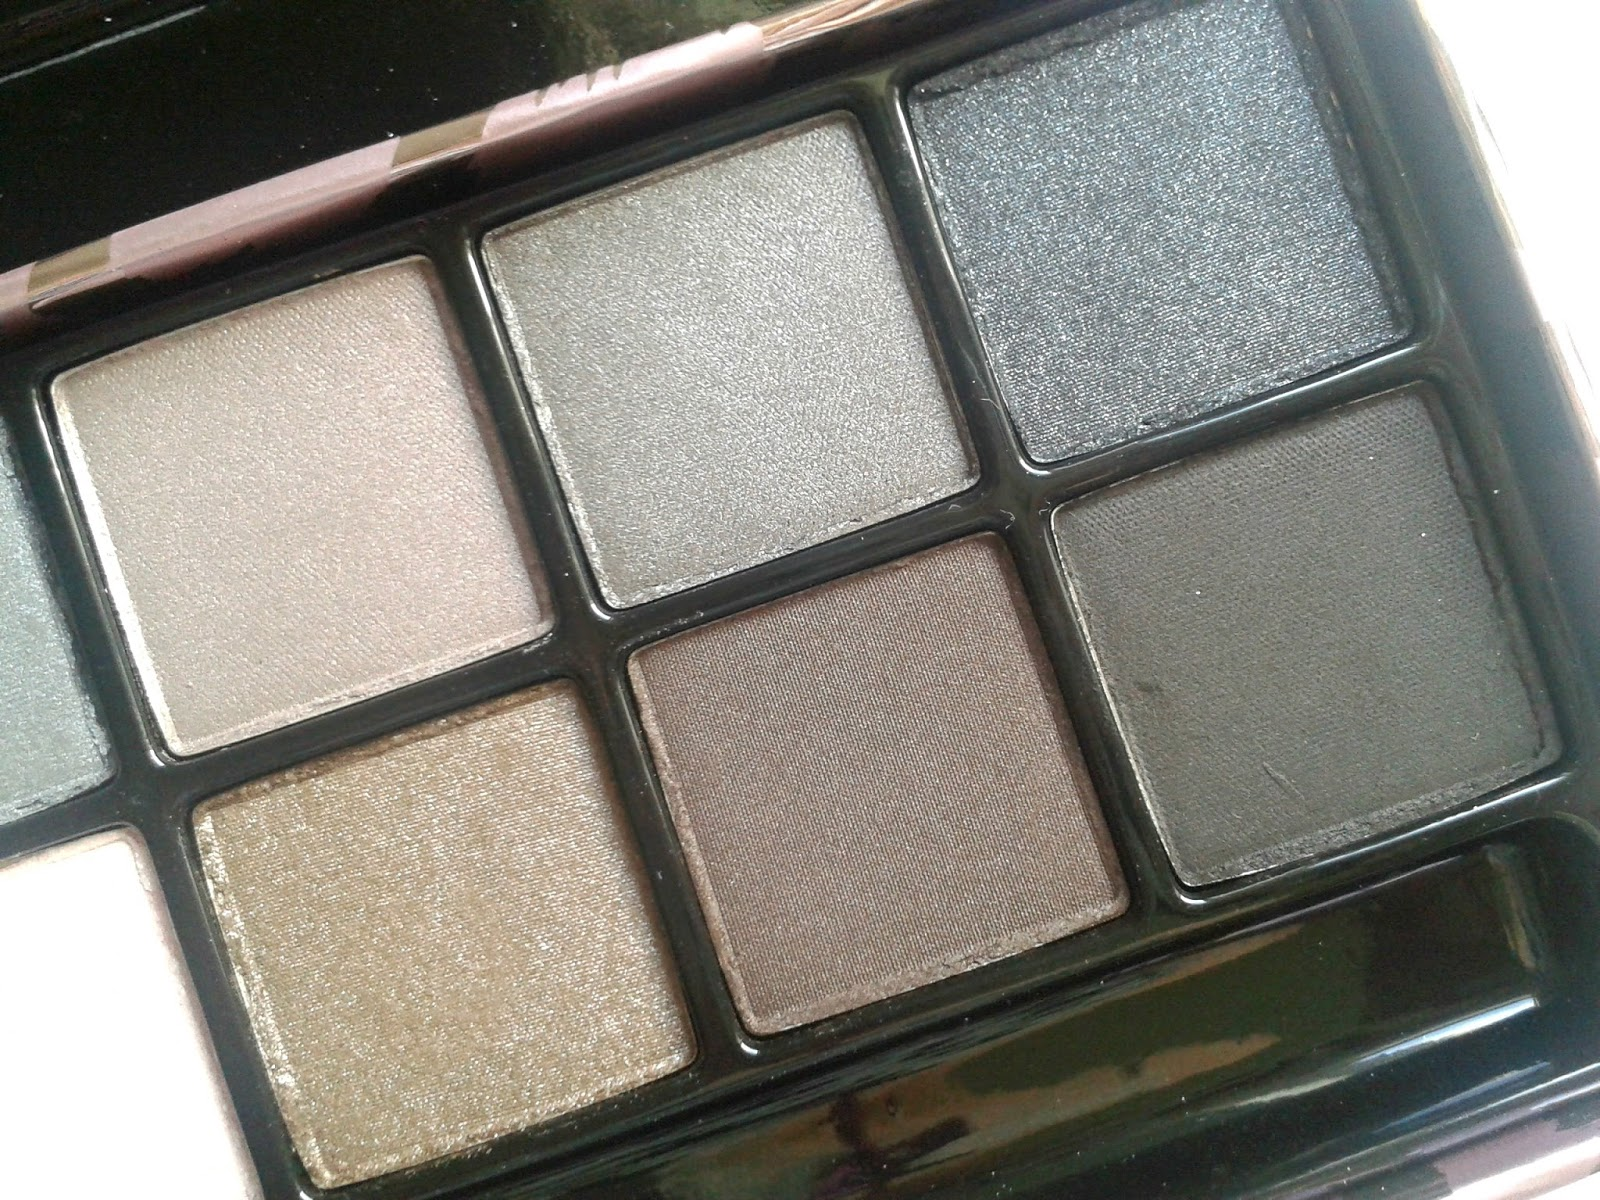 Victoria's Secret Smoky Exotics Eye Palette Eyeshadow Beauty Review